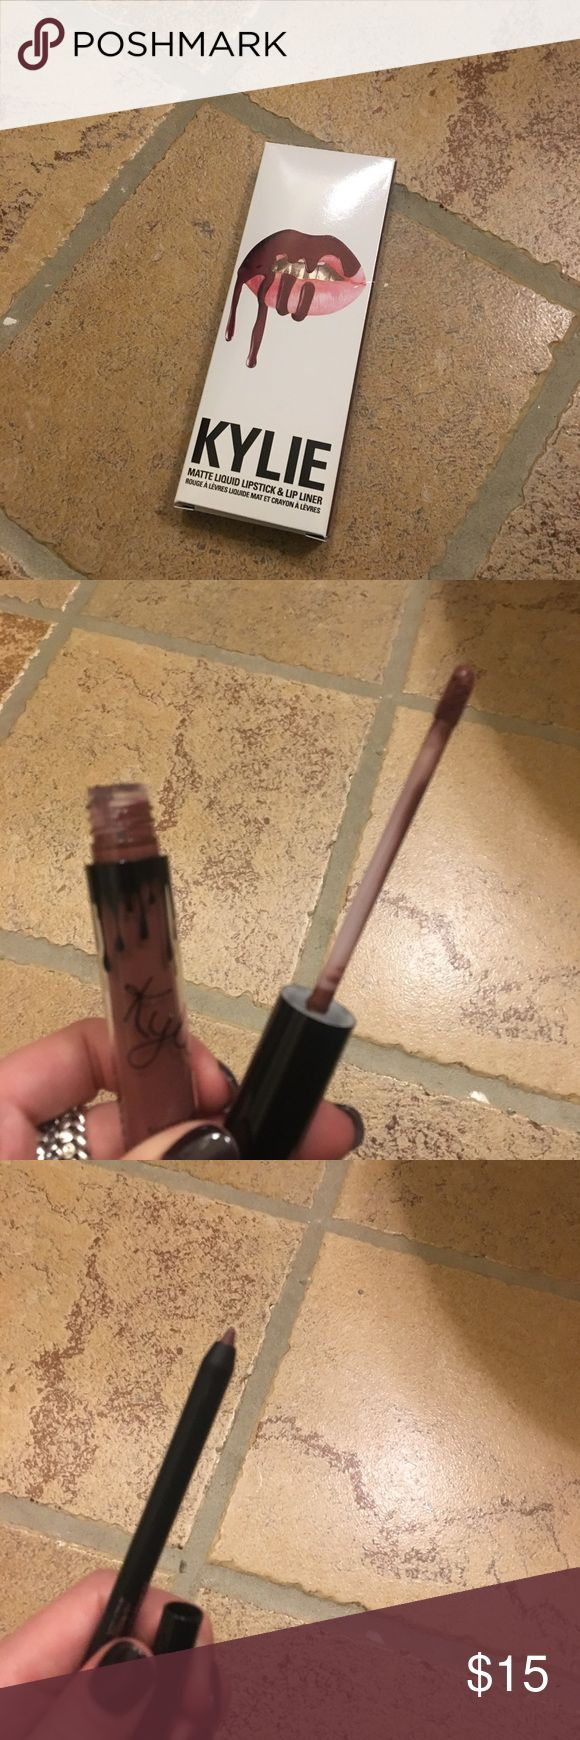 Kylie Jenner Lip Kit Love bite Never used, authentic Kylie Jenner Lip Kit.  Love Bite color Kylie Cosmetics Accessories